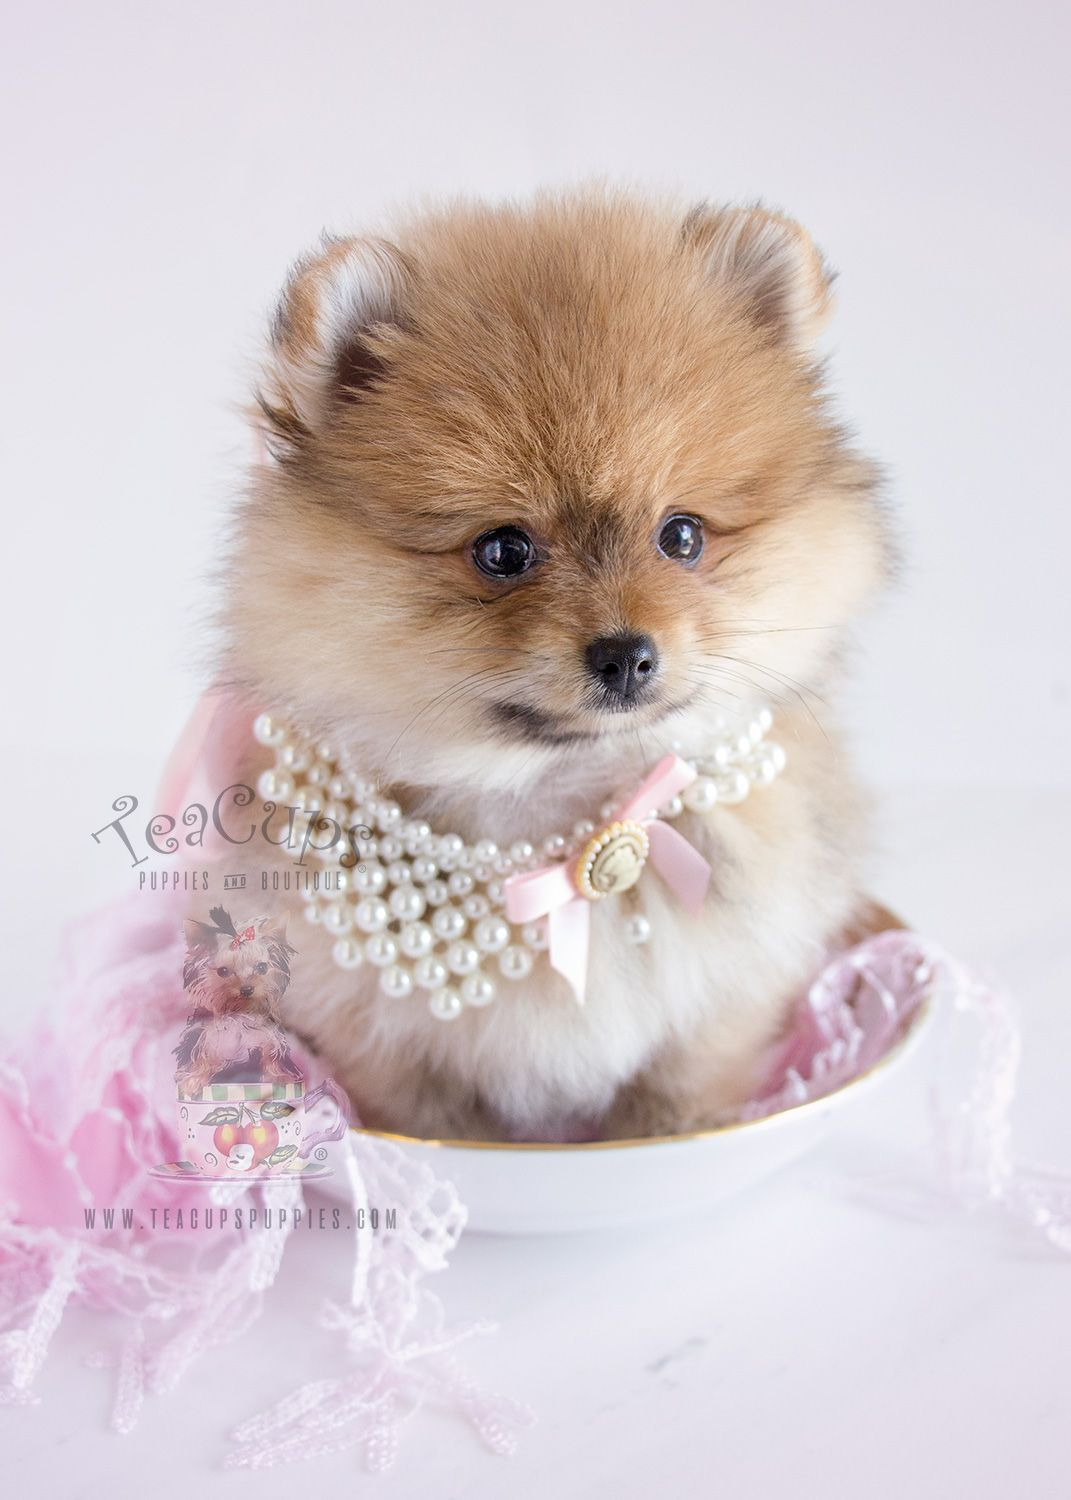 Fluffy Pomeranian Puppy By Teacups Puppies Boutique Www Teacupspuppies Com Pomeranian Puppy For Sale Pomeranian Puppy Teacup Puppies